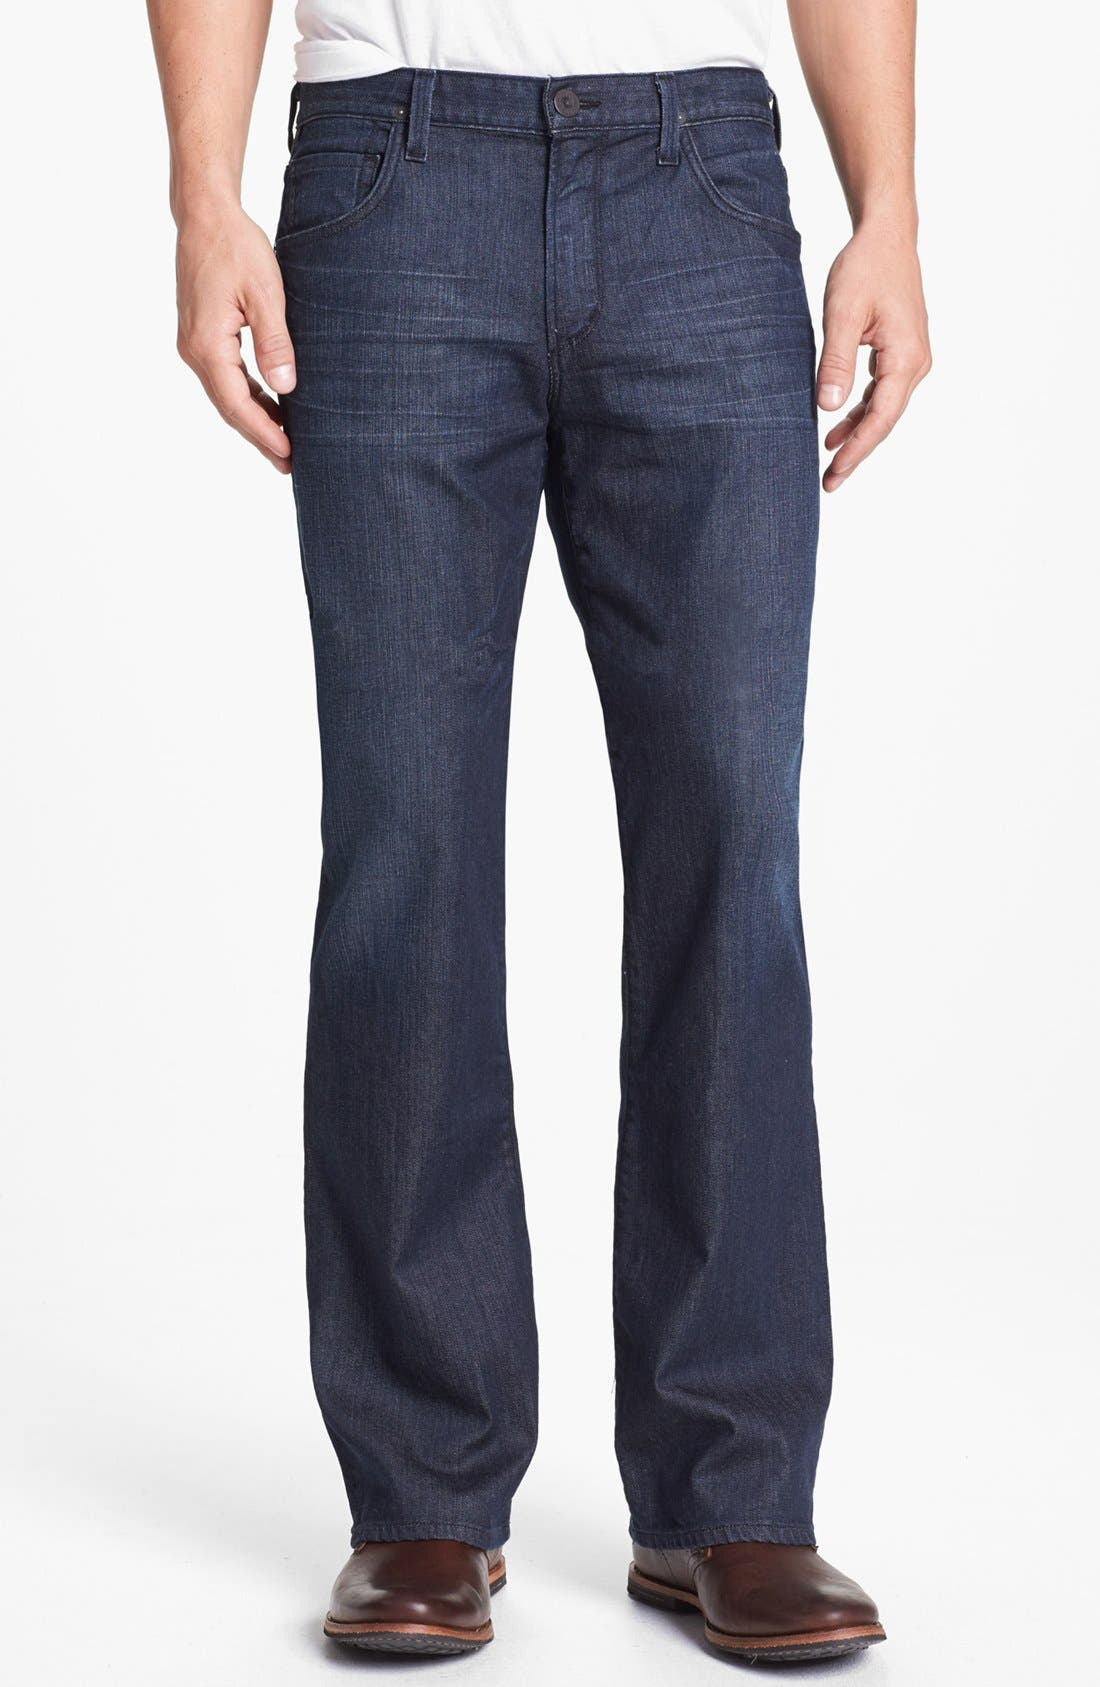 Main Image - Citizens of Humanity Bootcut Jeans (Alvin)